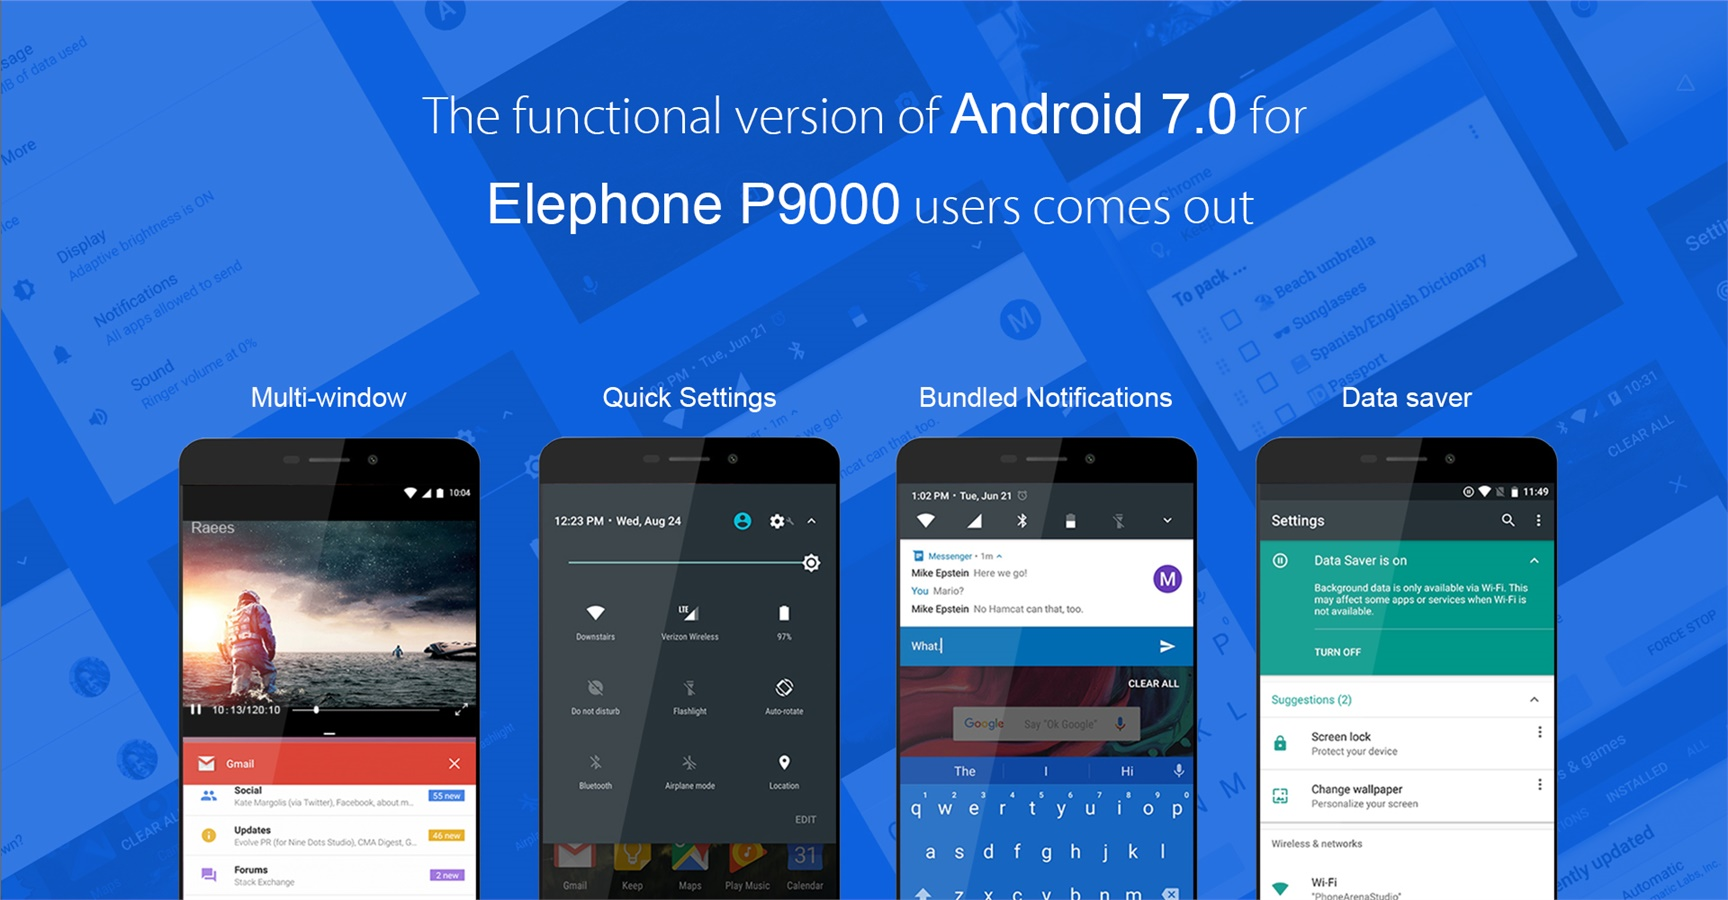 Elephone P9000 Receive Android 7.0 Nougat Download and Install Now